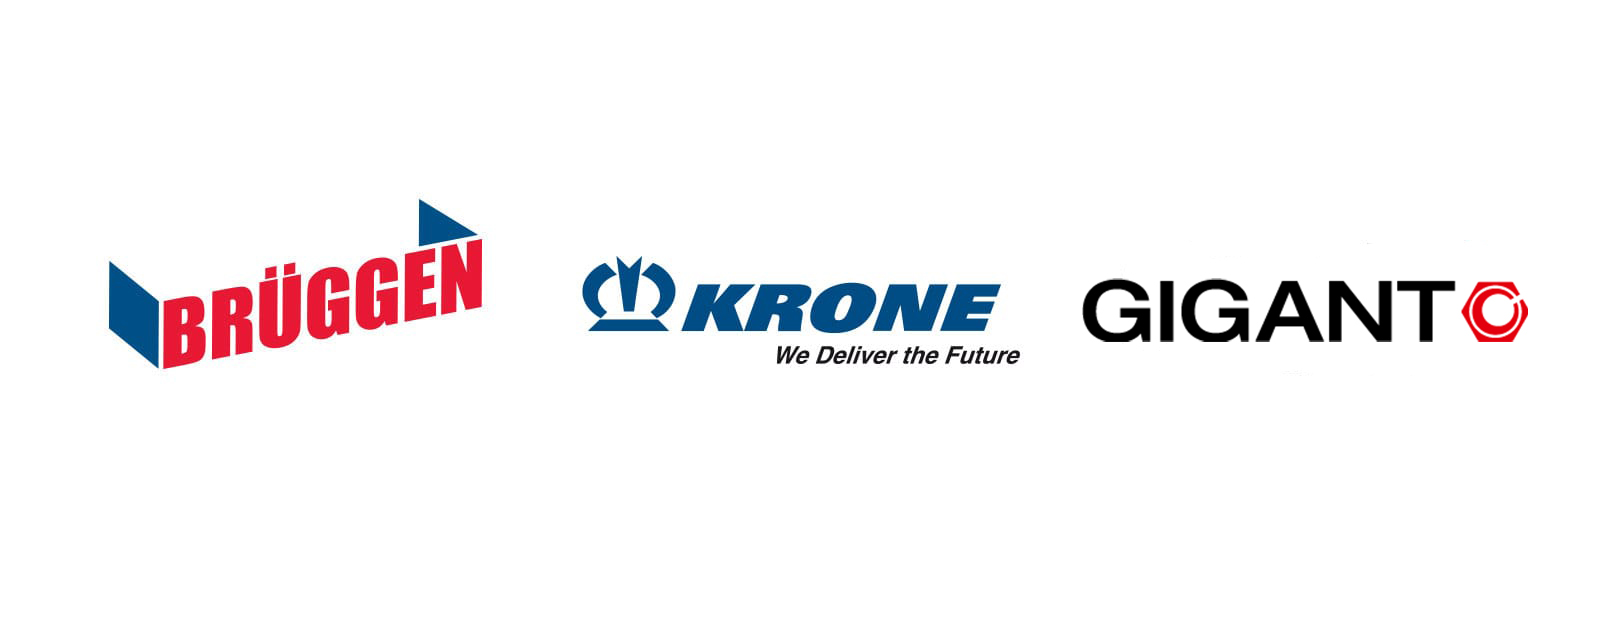 Krone Commercial Vehicle Group